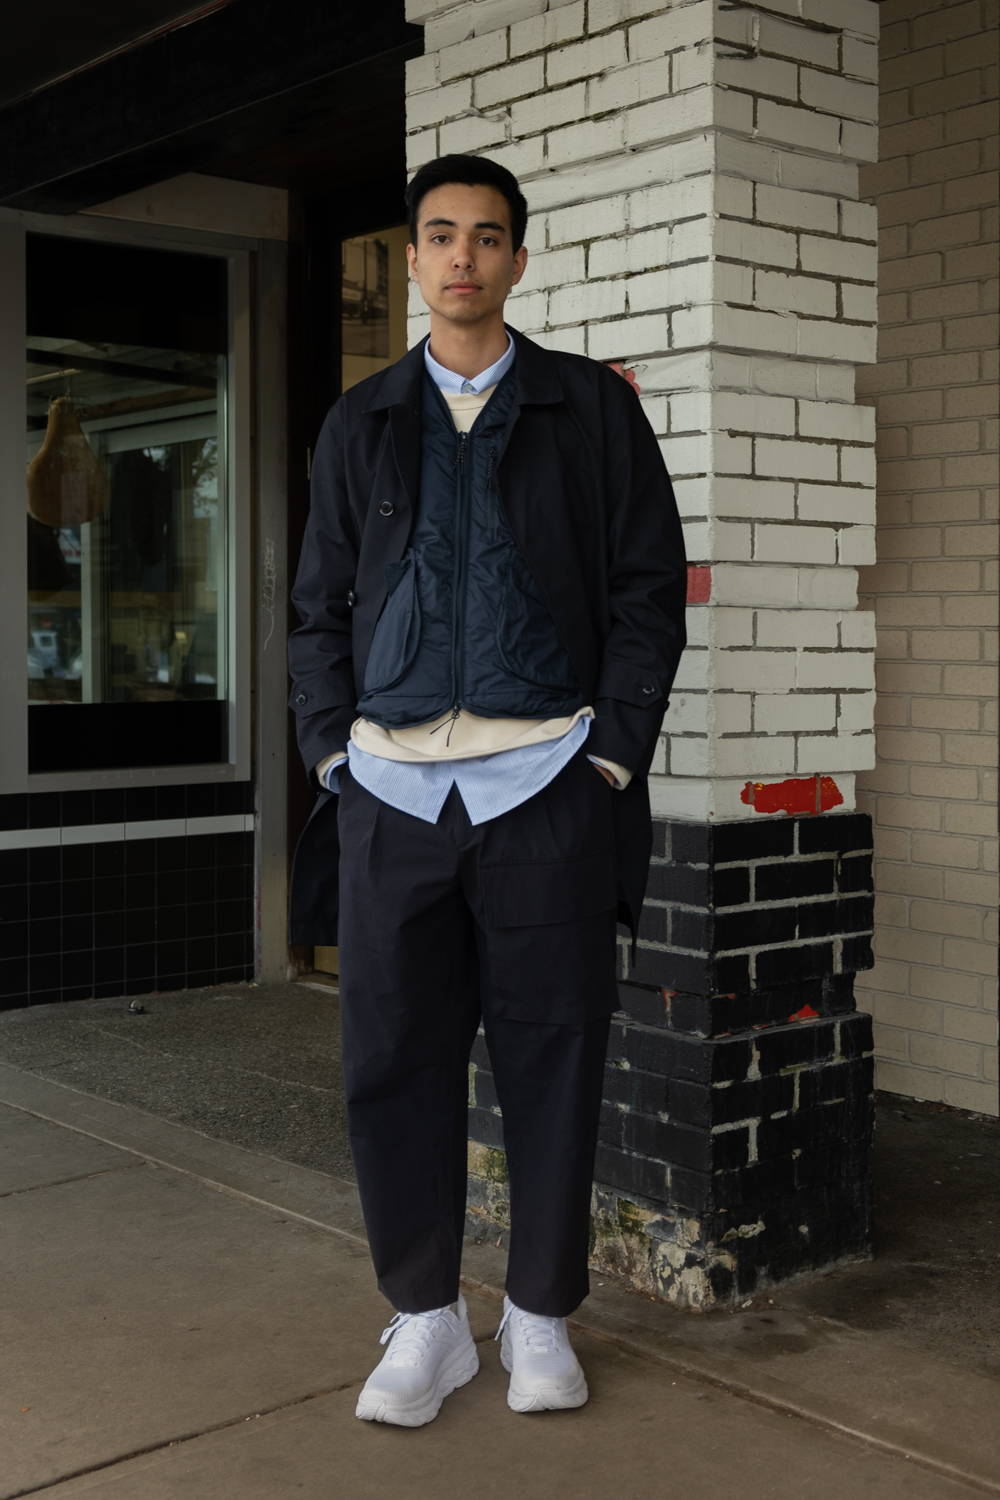 ss21 wallace style #1